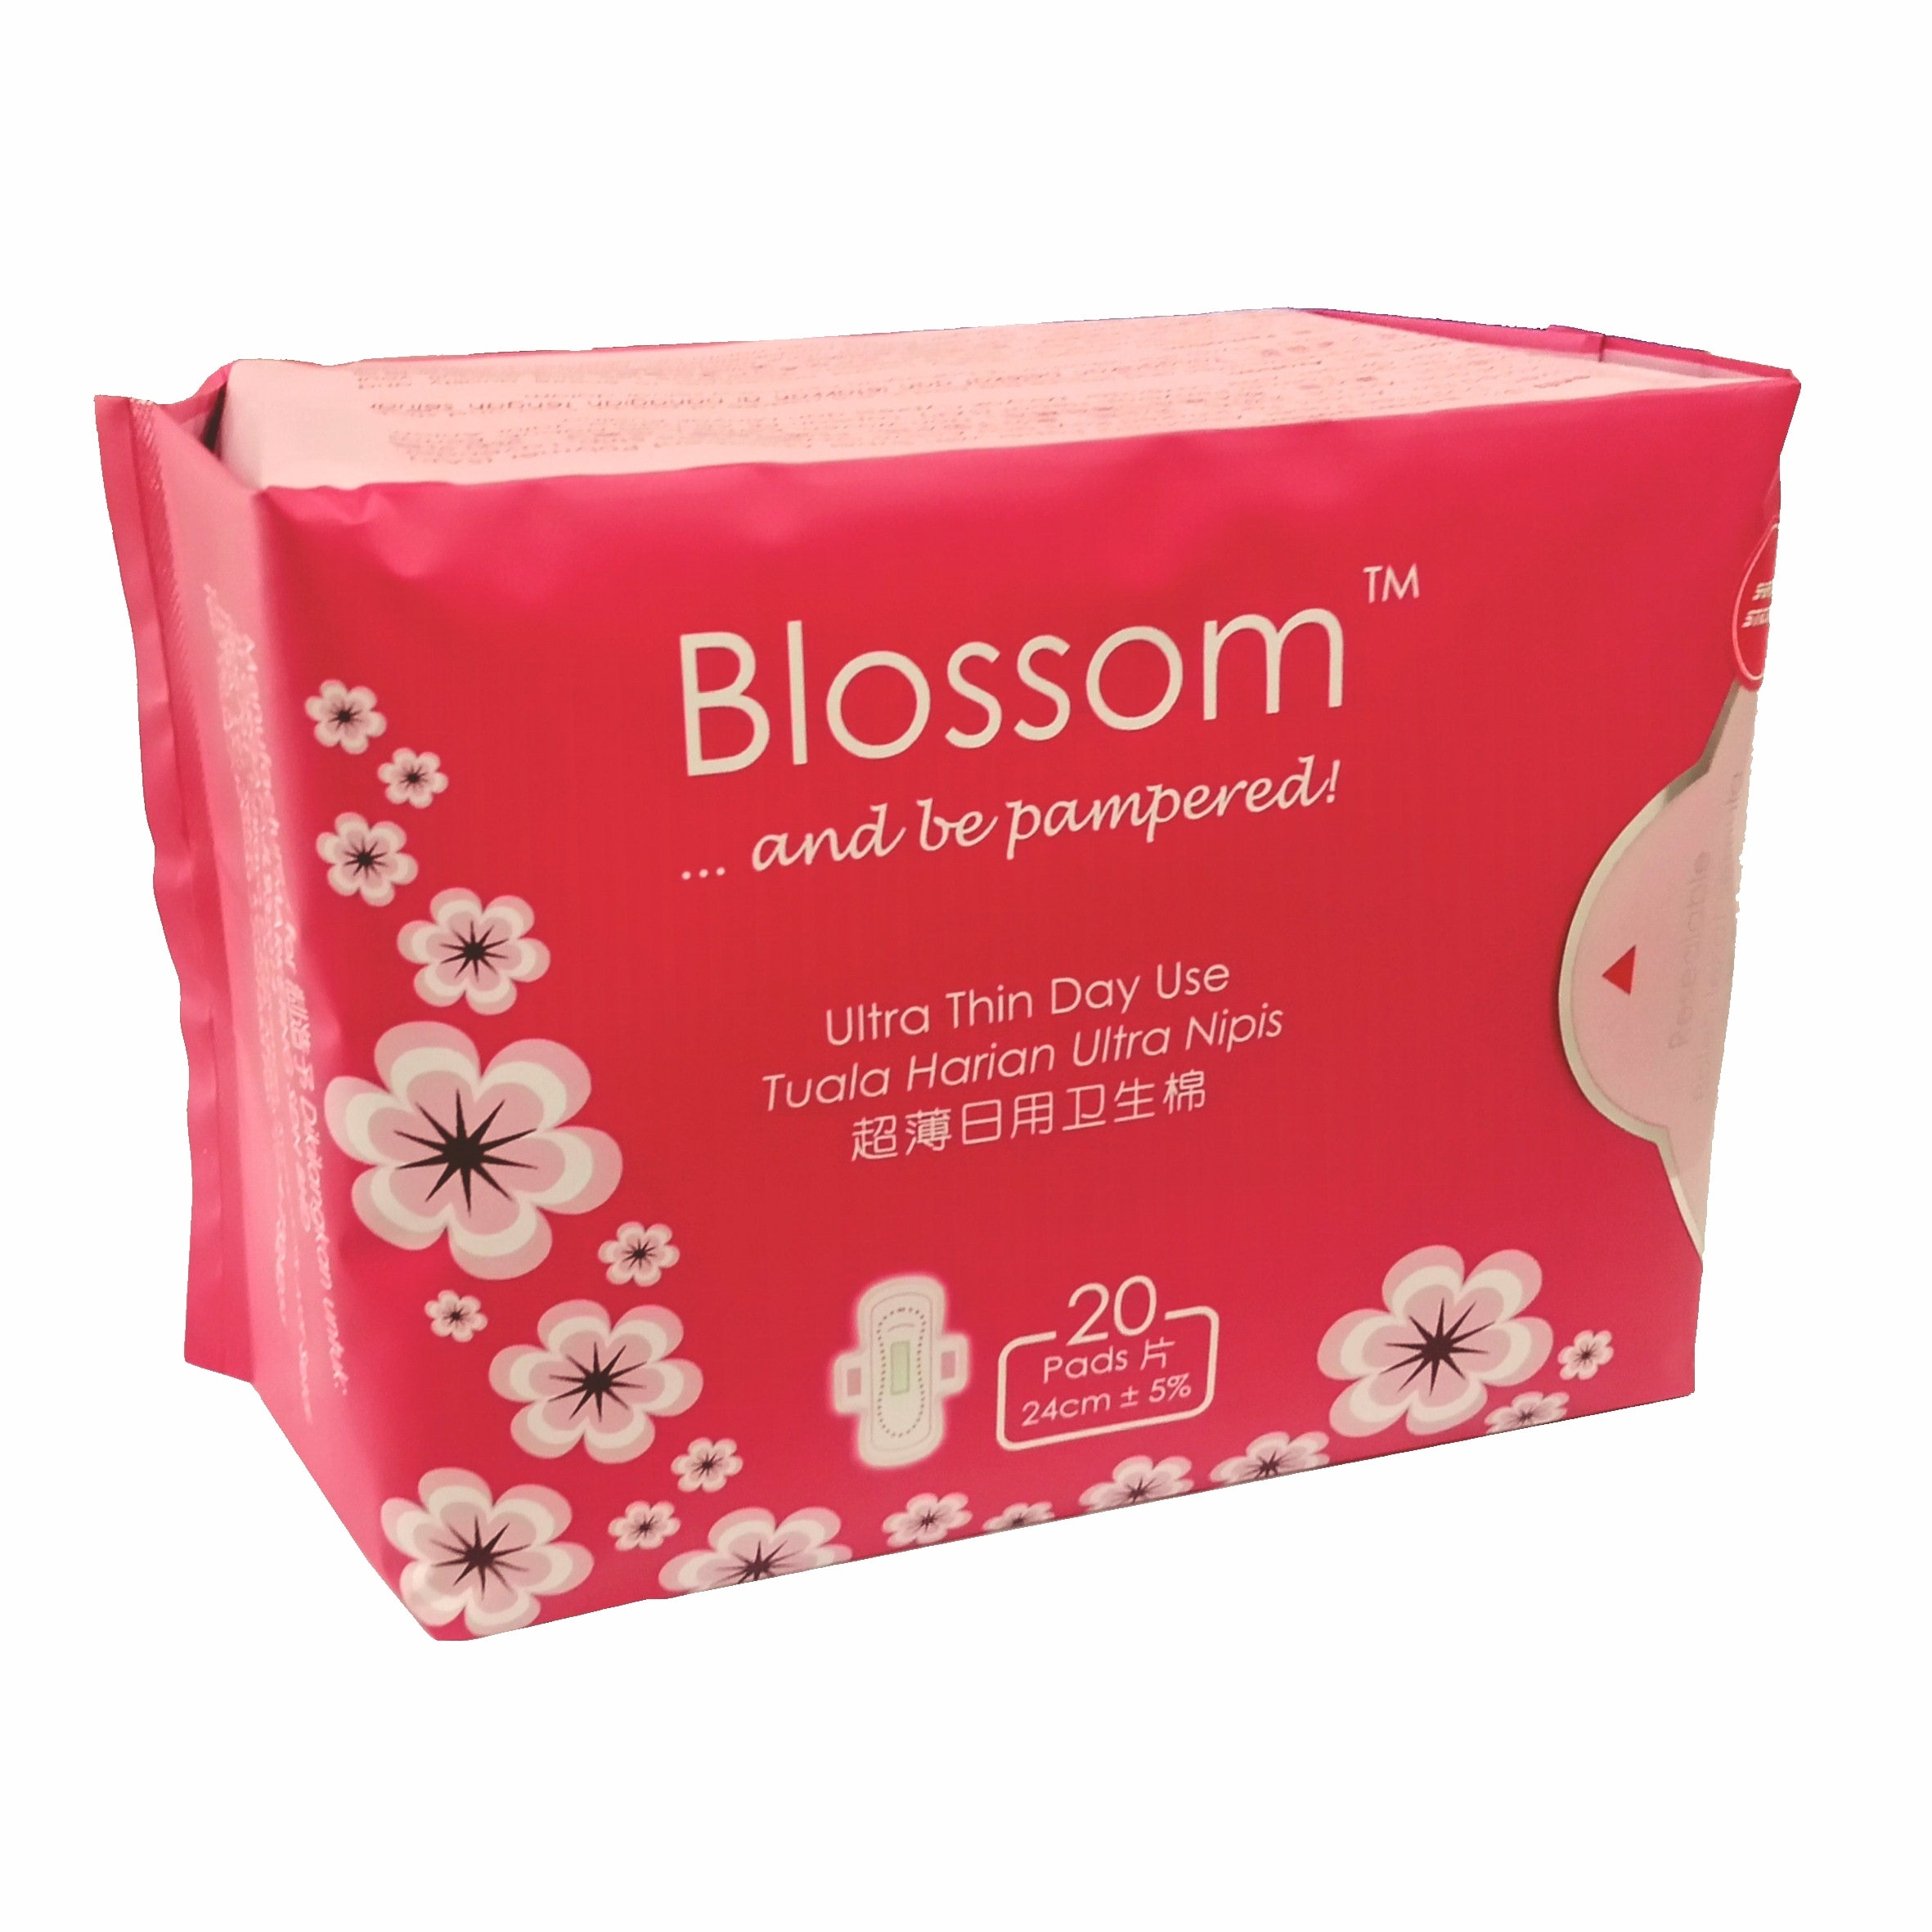 Blossom Ultra Thin Day Use 20pads